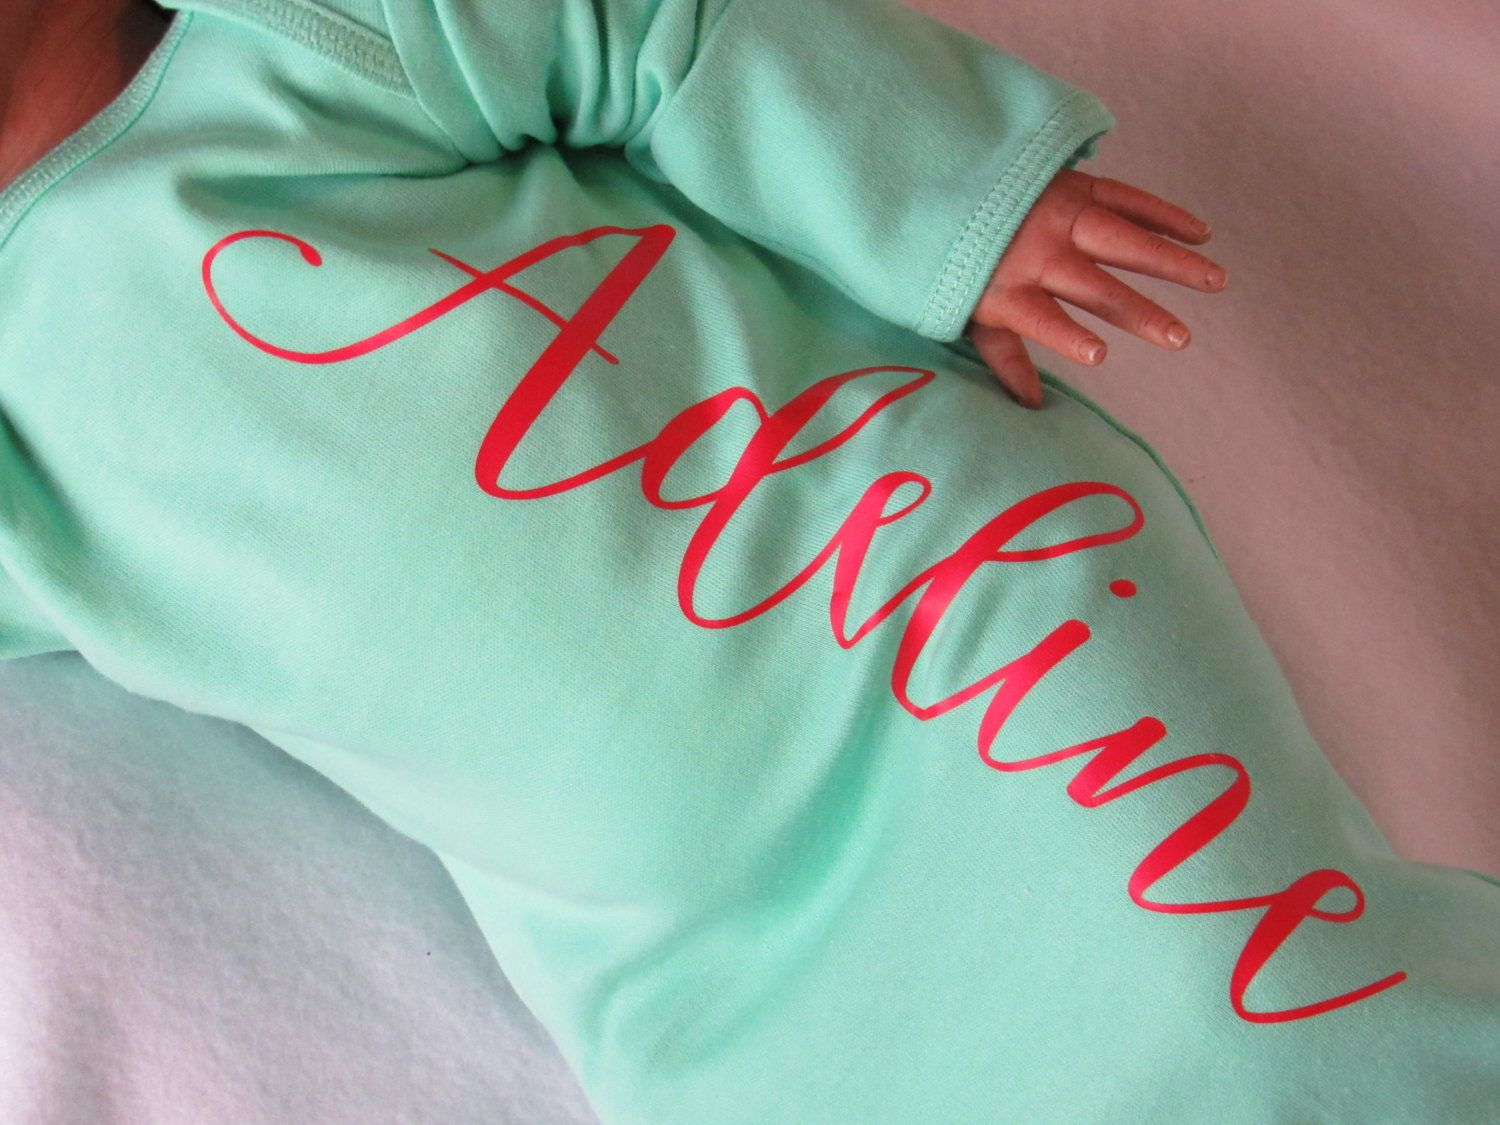 Newborn girl red and aqua name gown - personalized red and aqua baby girl take home outfit - newborn girl red and aqua hospital outfit by TheNewBabyBoutique on Etsy